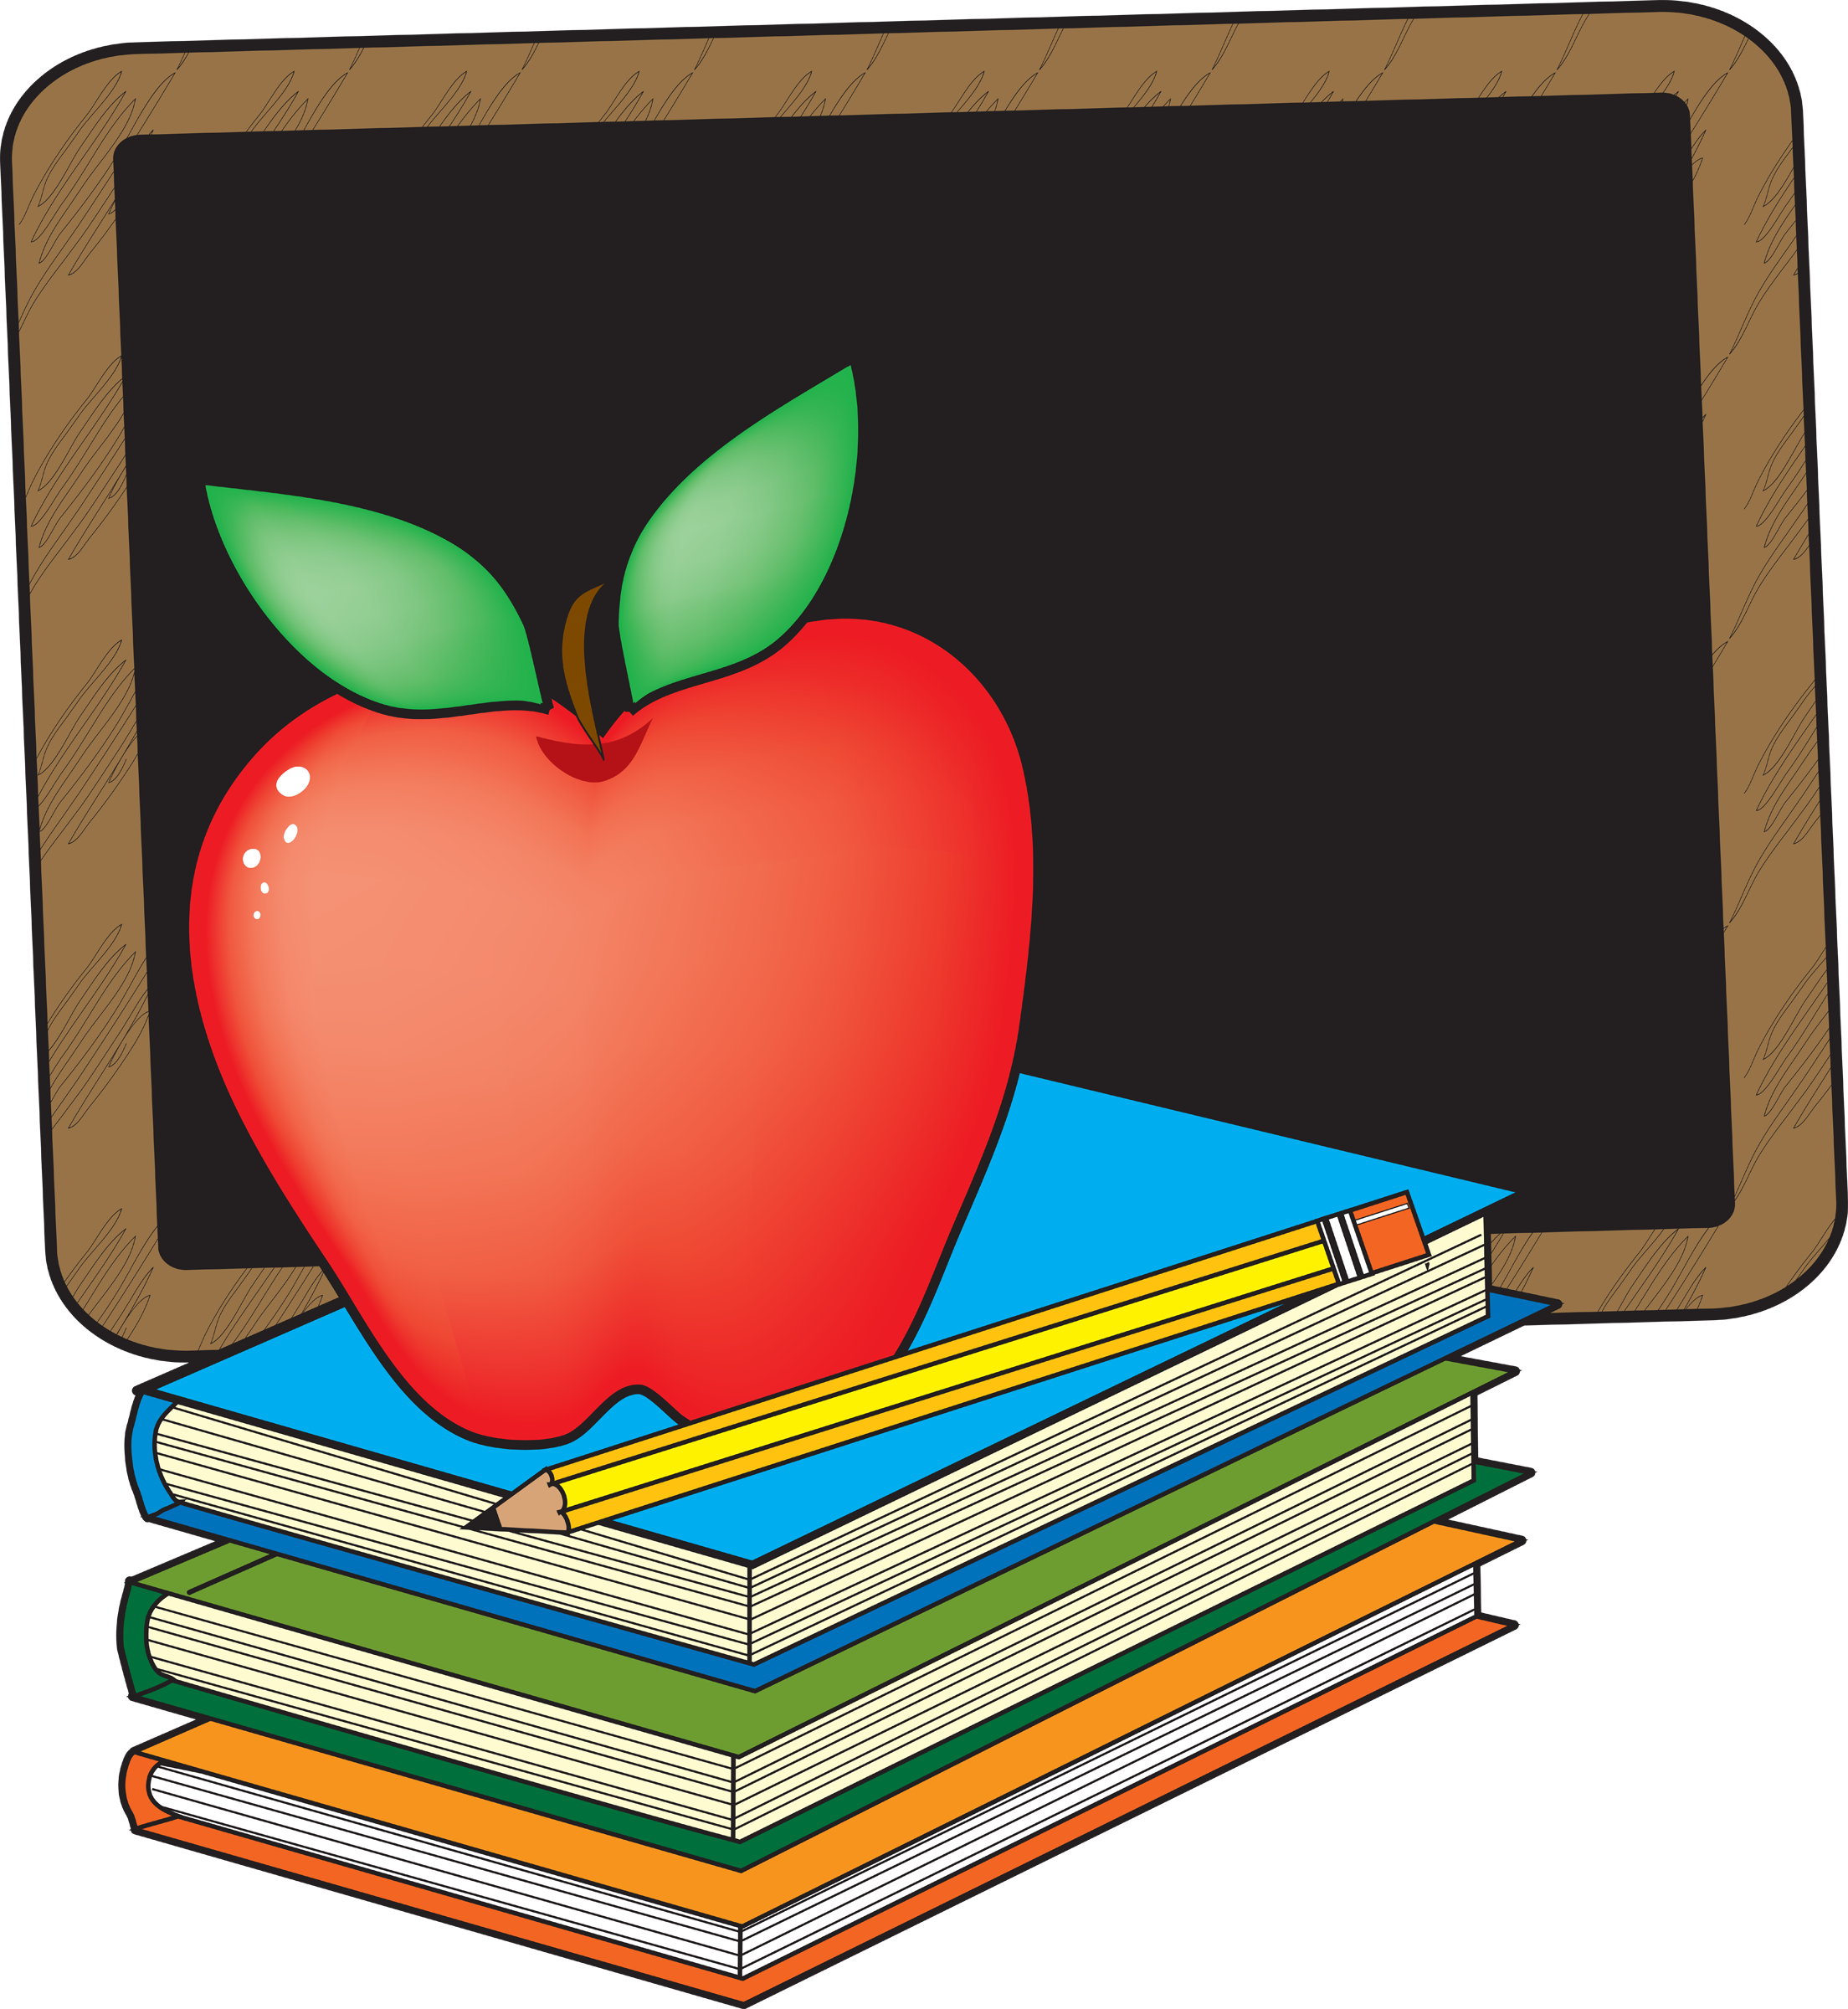 Free book clipart for teachers image black and white Apple and books clipart clipart - FamClipart image black and white